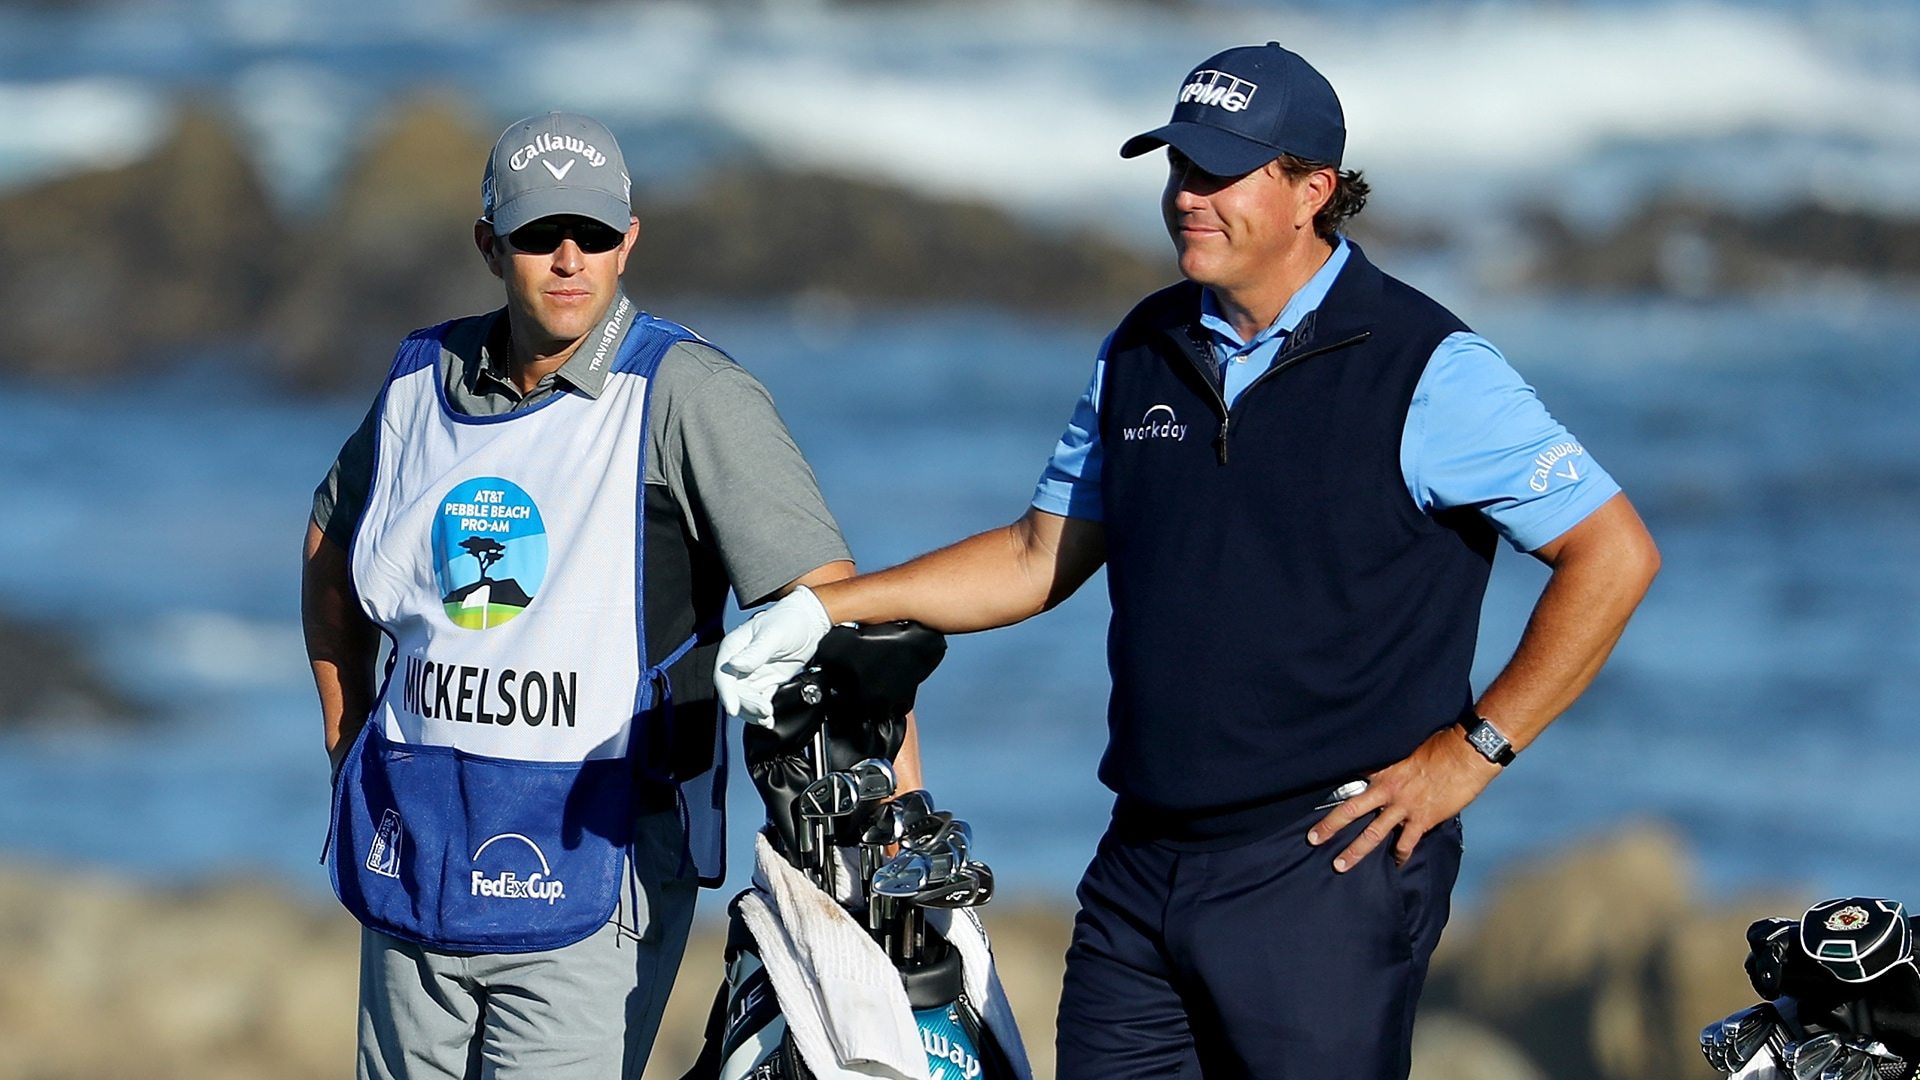 Tim Mickelson and Phil Mickelson at the 2018 AT&T Pebble Beach Pro-Am.